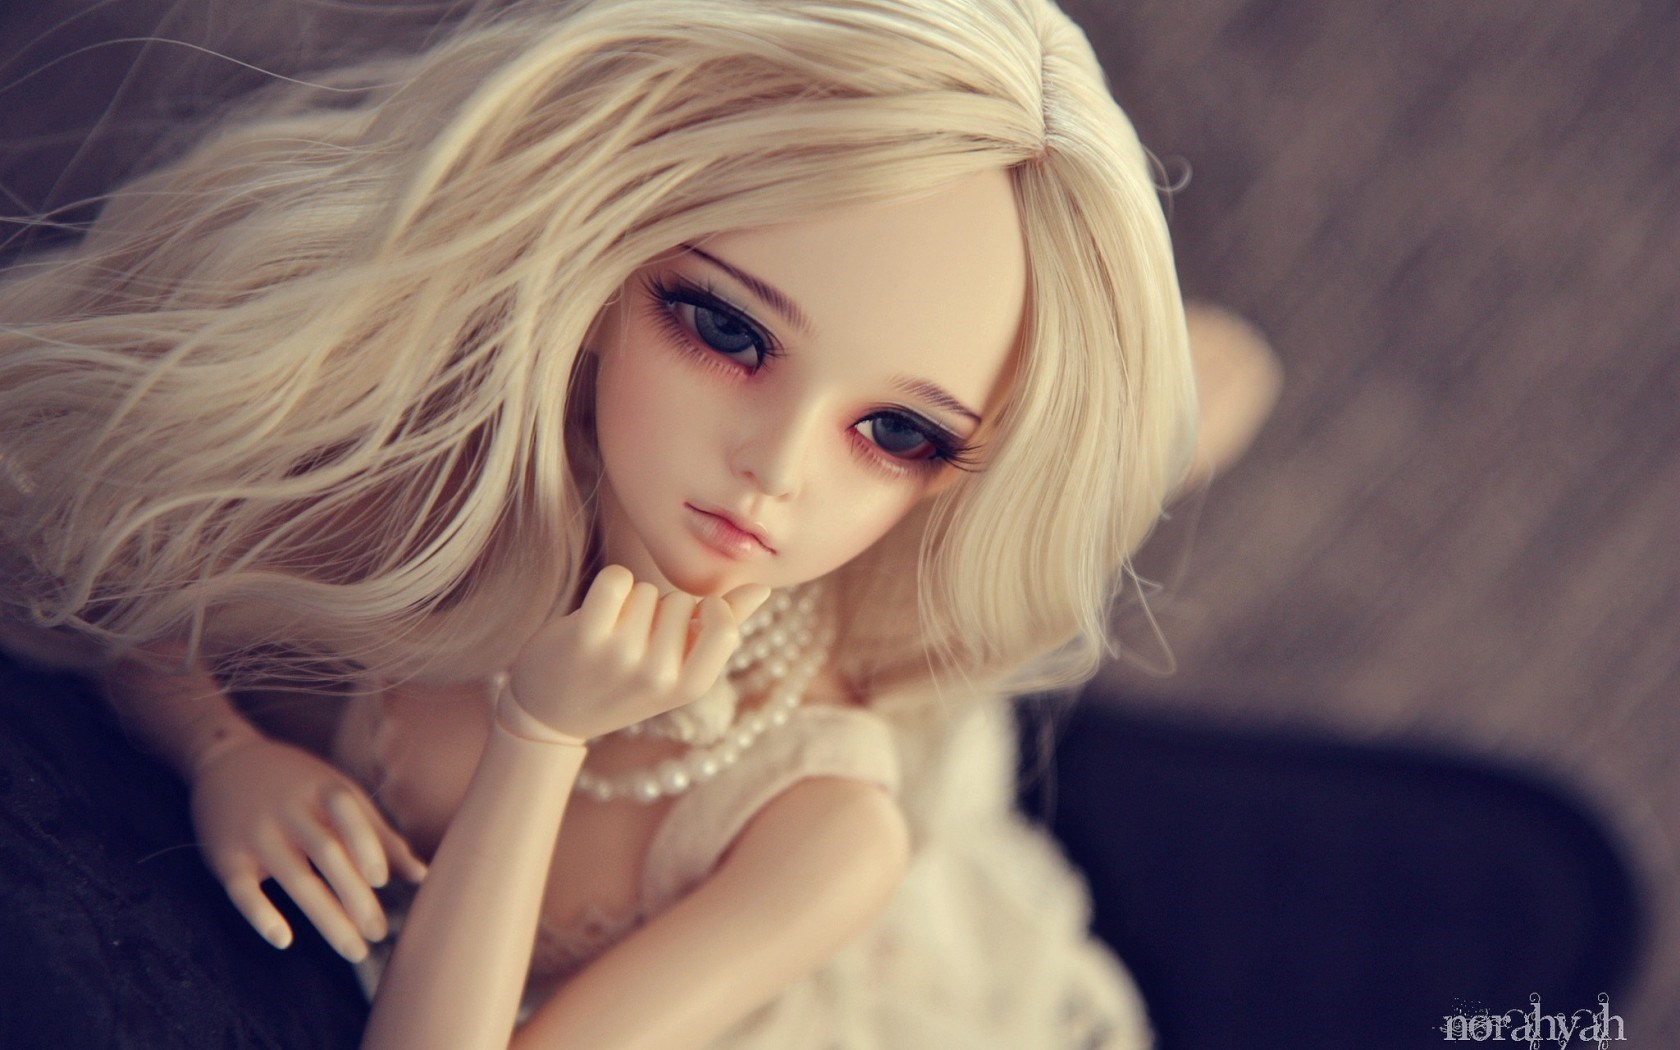 Love Wallpaper With Doll : Beautiful Blonde Doll - Wallpaper, High Definition, High Quality, Widescreen